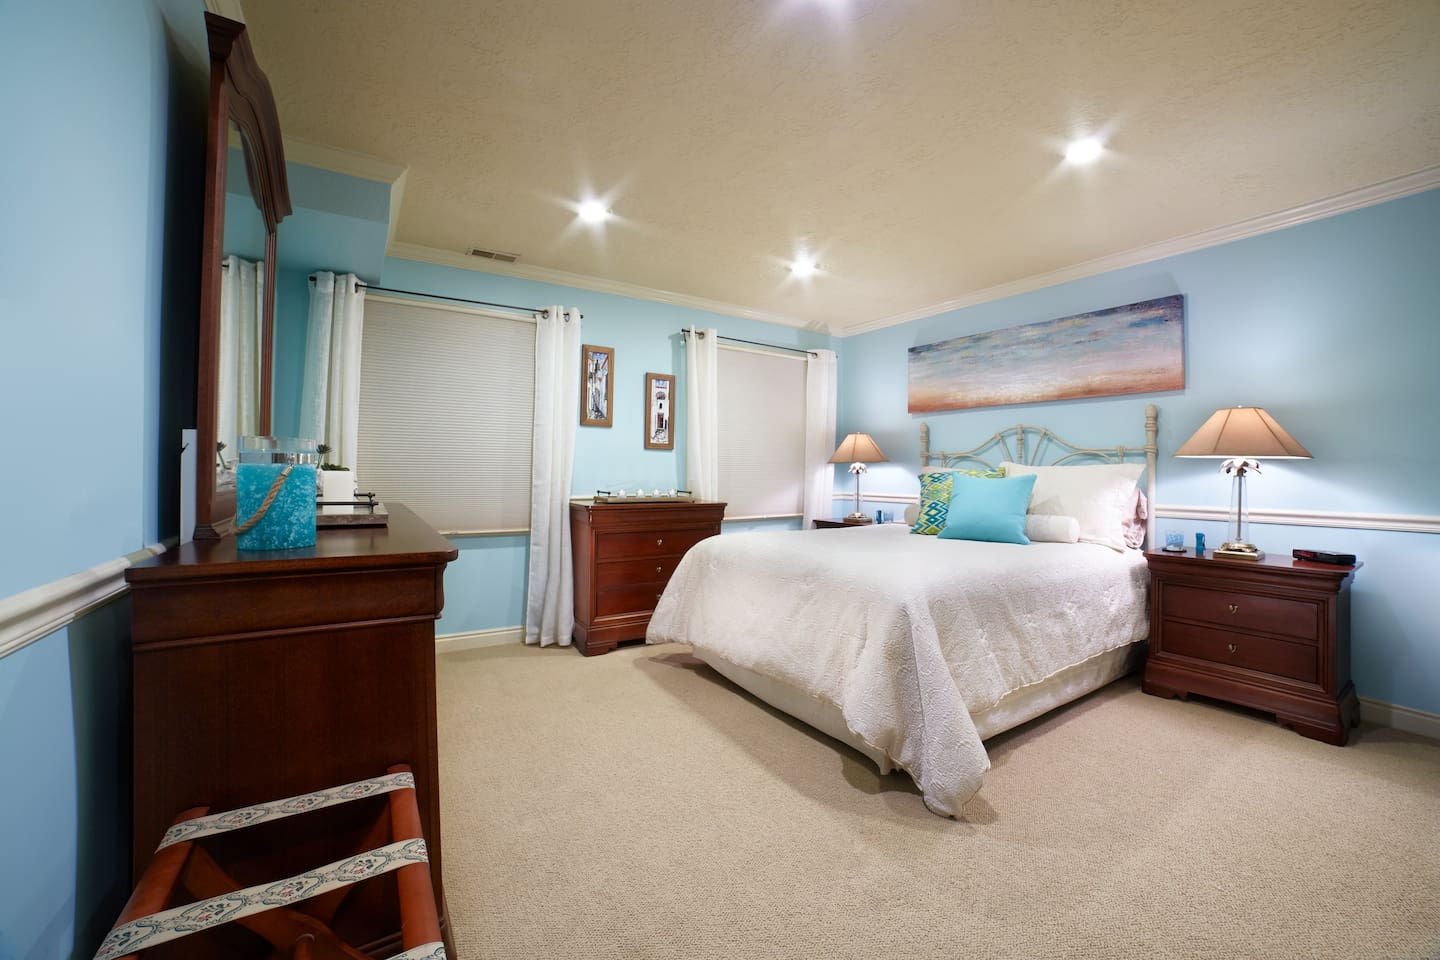 Queen Size Bed with dressers and nightstands